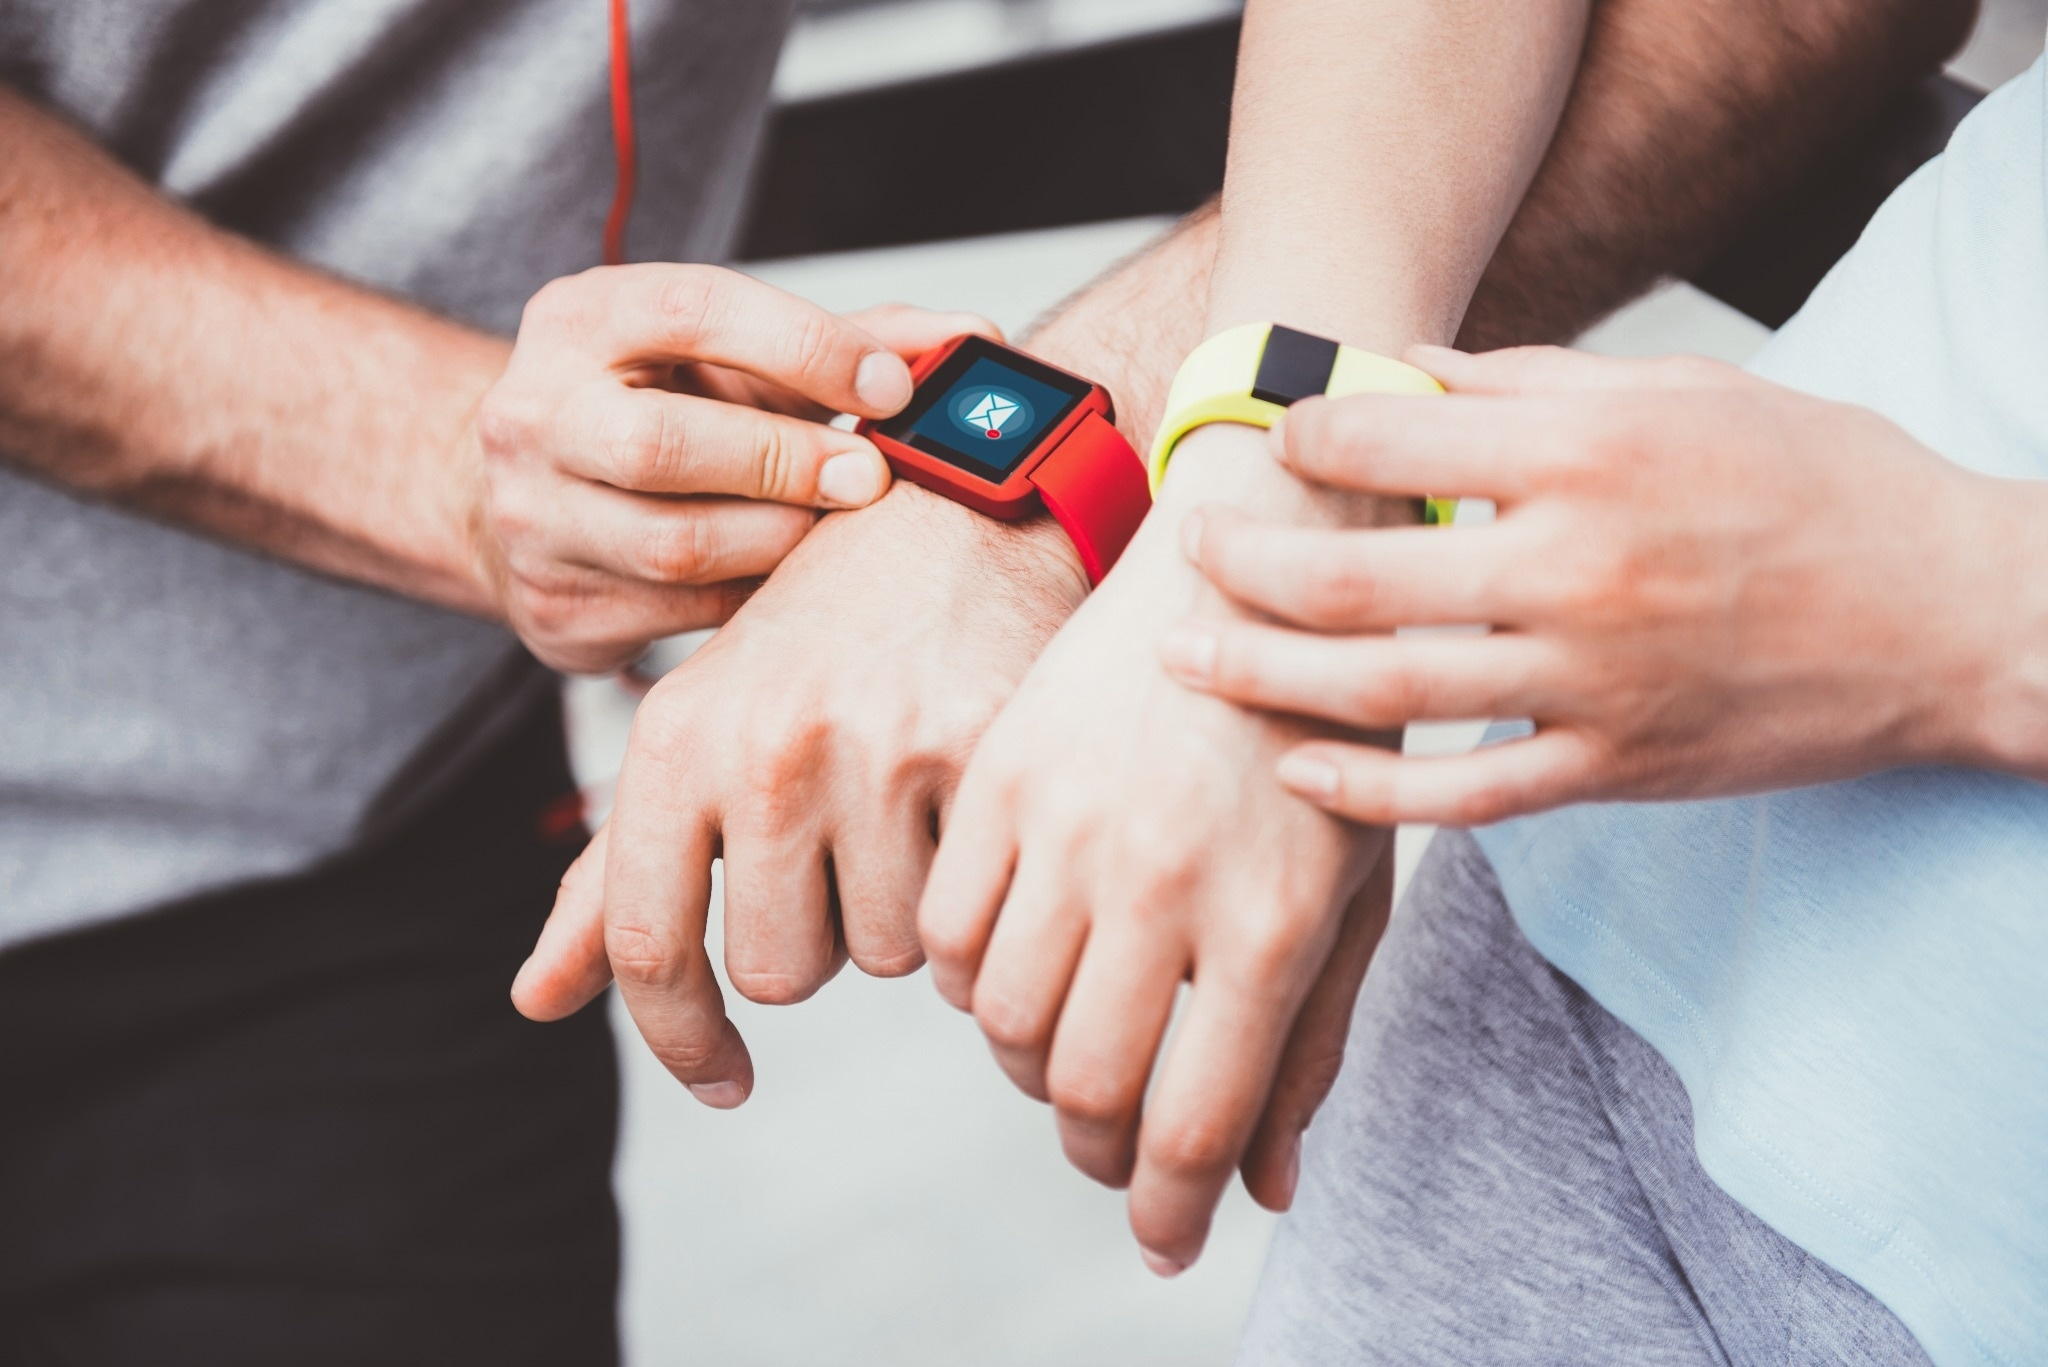 These Top 20 Wearable Tech Micro-Influencers Can Put the Future of Tech in Your Hands... Literally